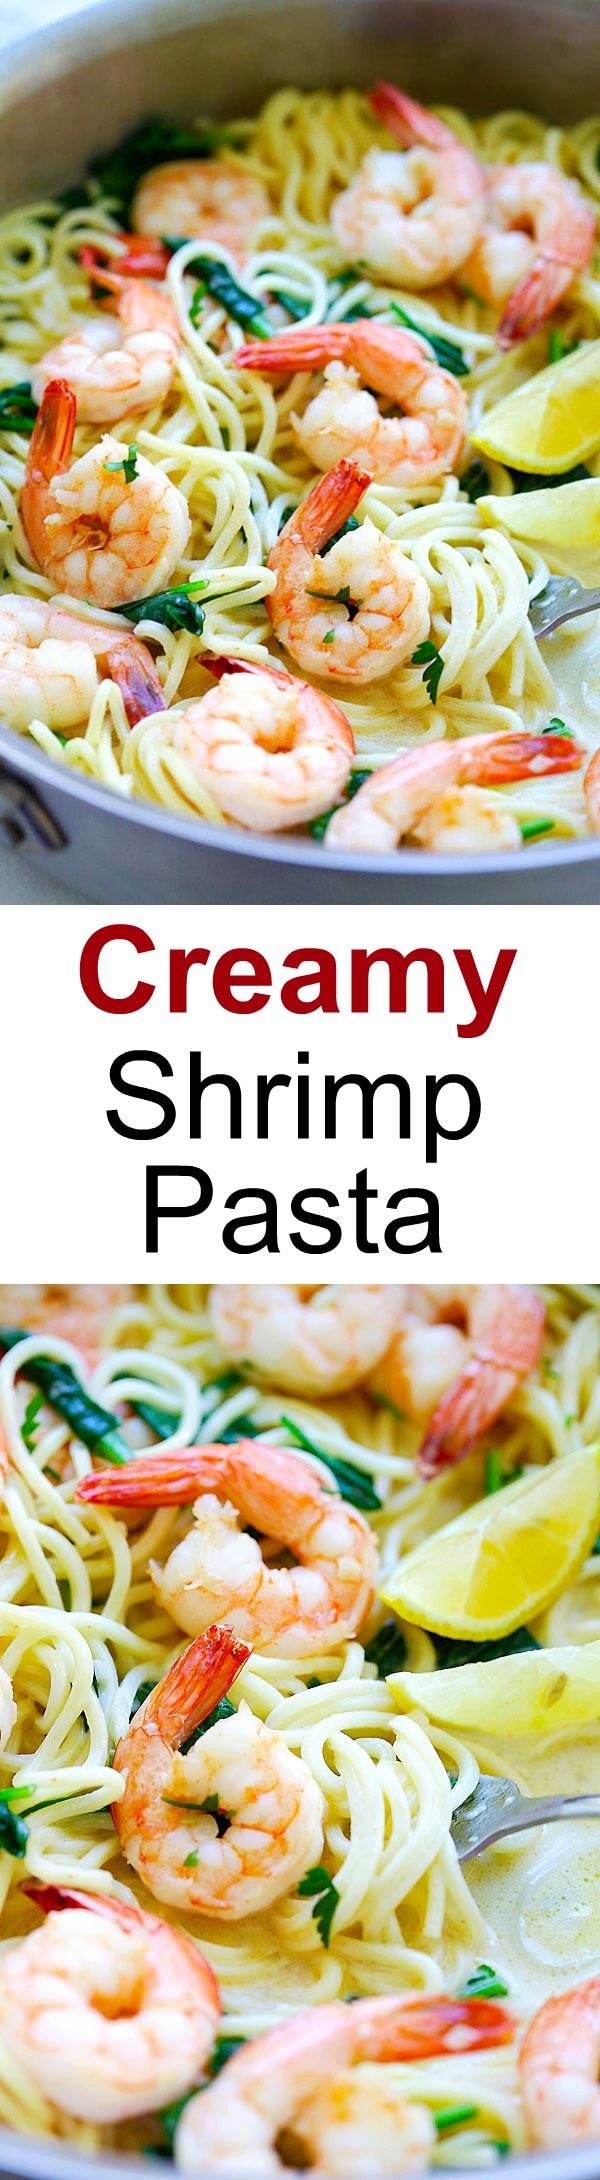 Creamy Shrimp Pasta – easy pasta recipe with shrimp, spaghetti in a buttery and creamy sauce. Cooked in one pot, dinner is ready in 20 mins | rasamalaysia.com